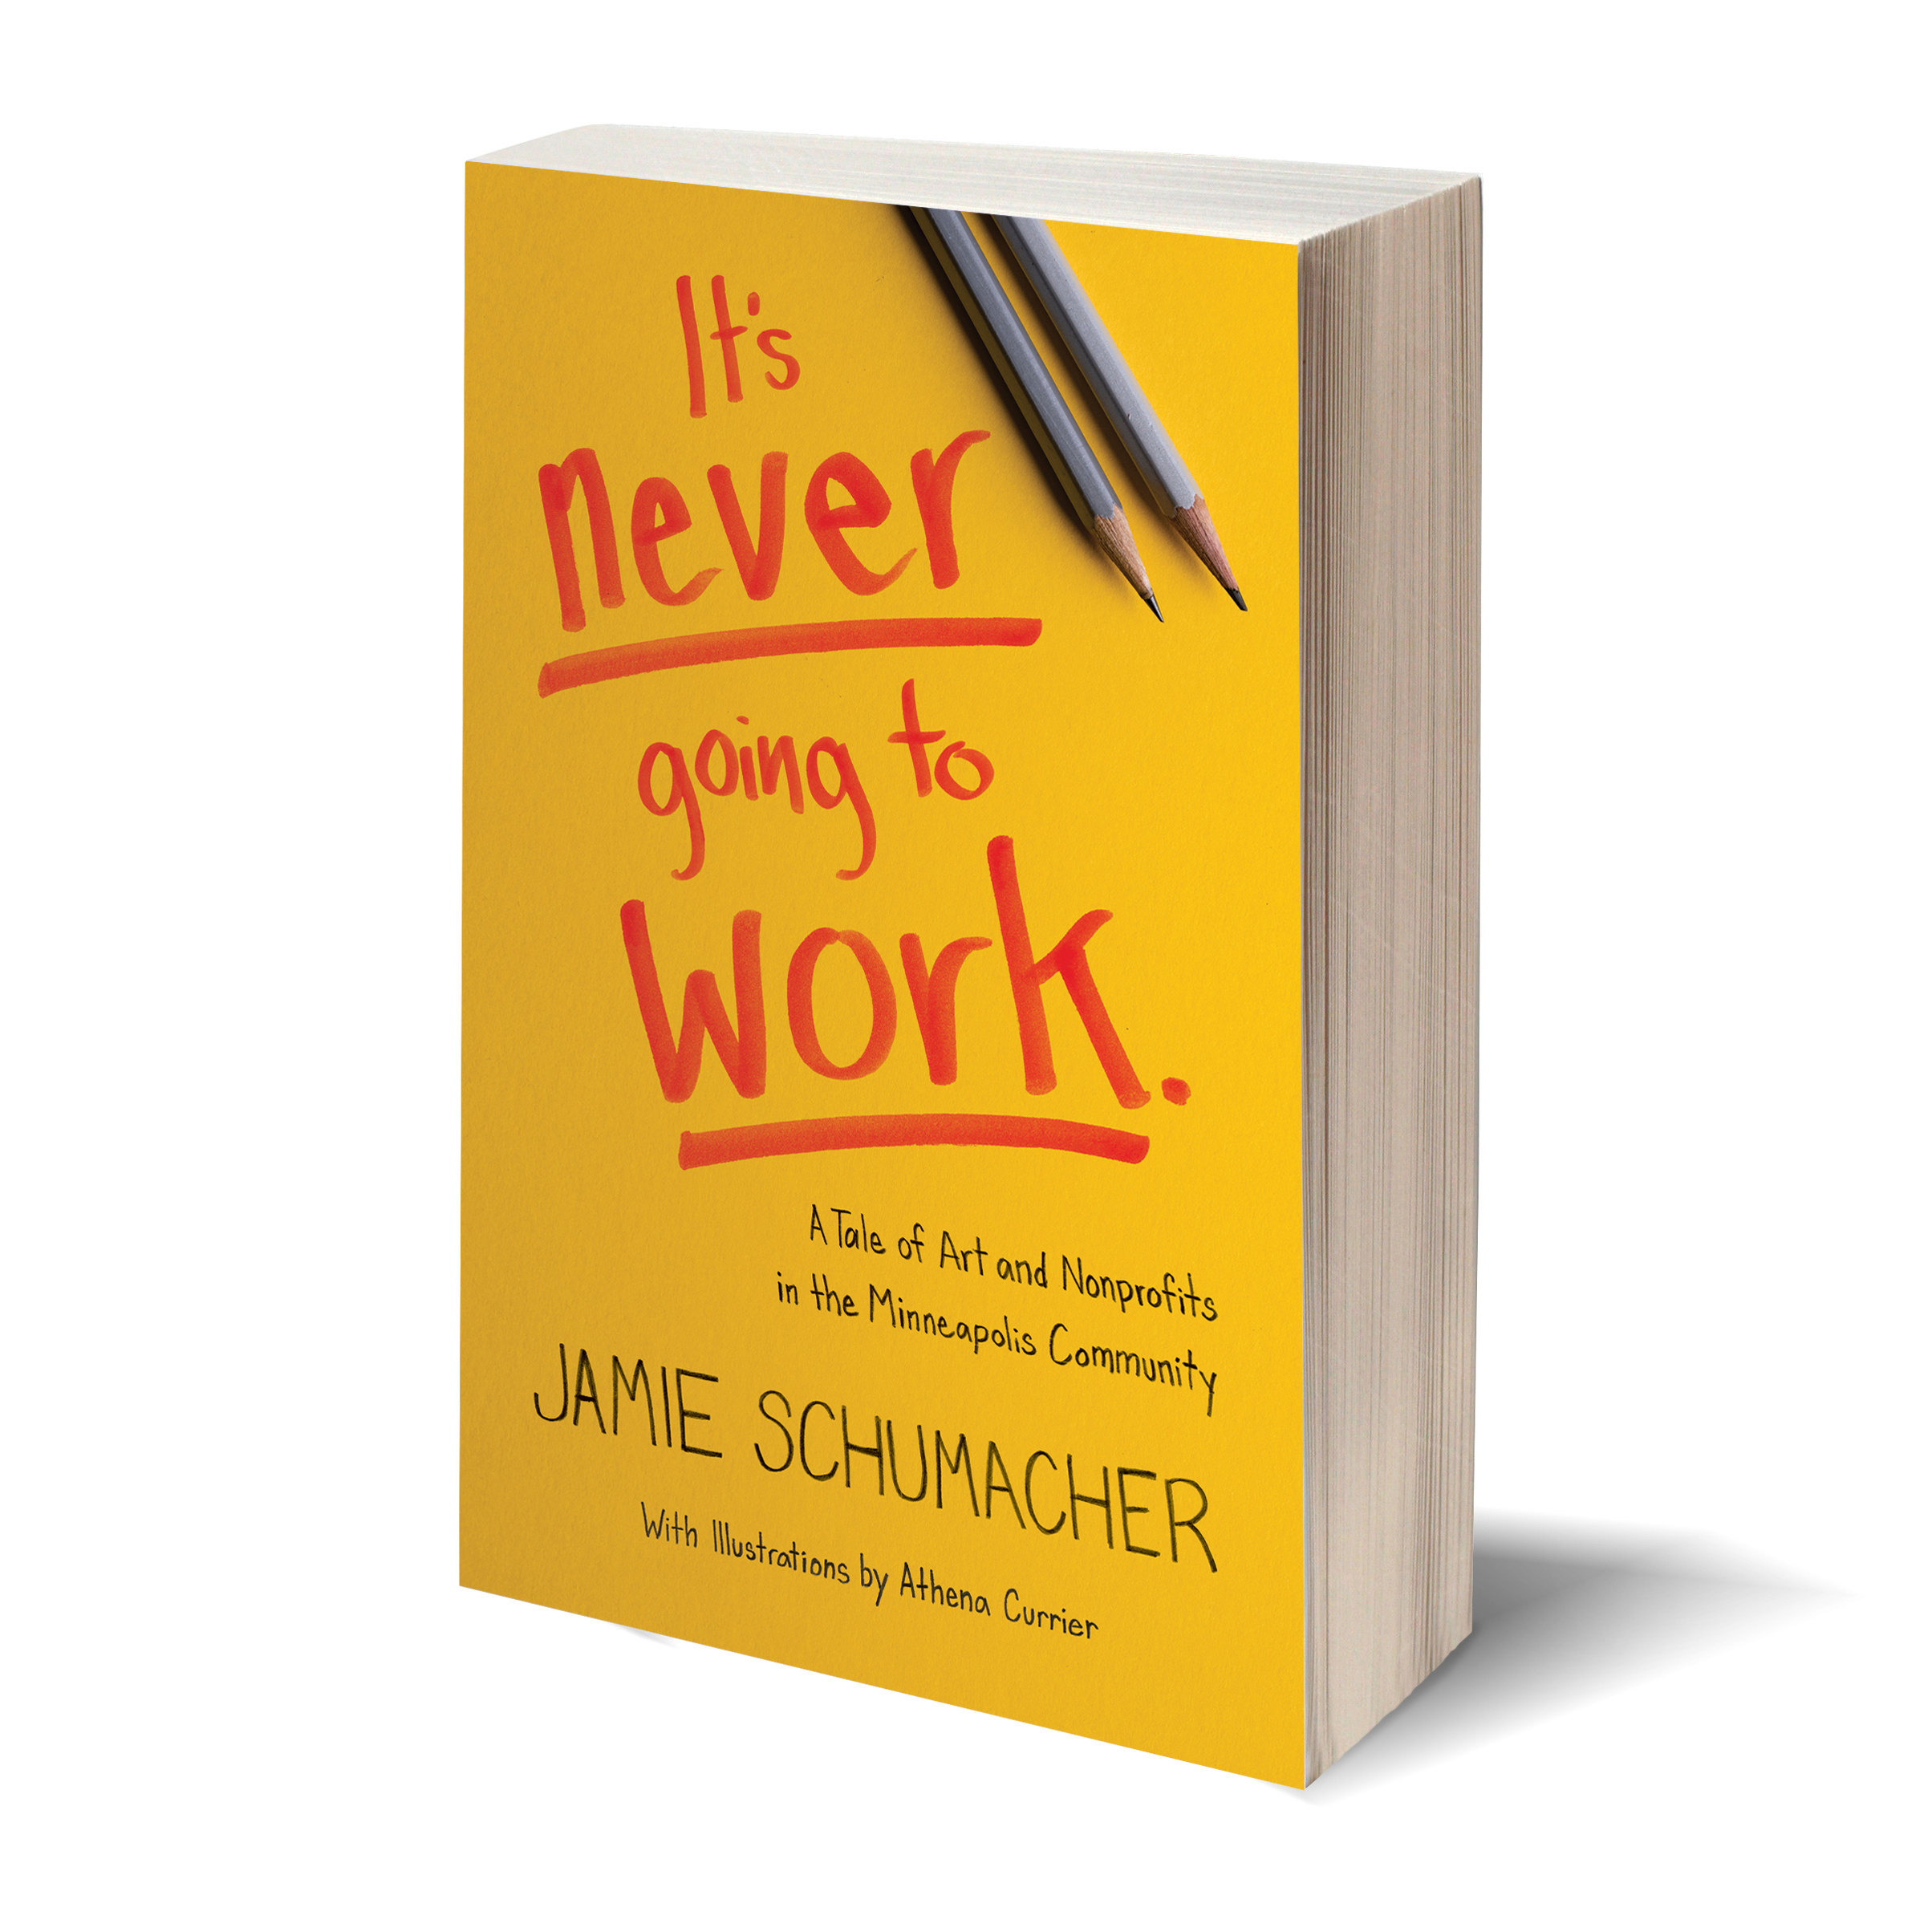 - This post is adapted from It's Never Going To Work: A Tale of Art and Nonprofits in the Minneapolis Community with illustrations by Athena Currier. Post graphics by Jamie Schumacher. ©2018.It's Never Going To Work is a light-hearted, illustrated book that offers real-life insights on founding a community space and nonprofit. It provides tools, tips, resources, and camaraderie to community organizers and anybody attempting something new.